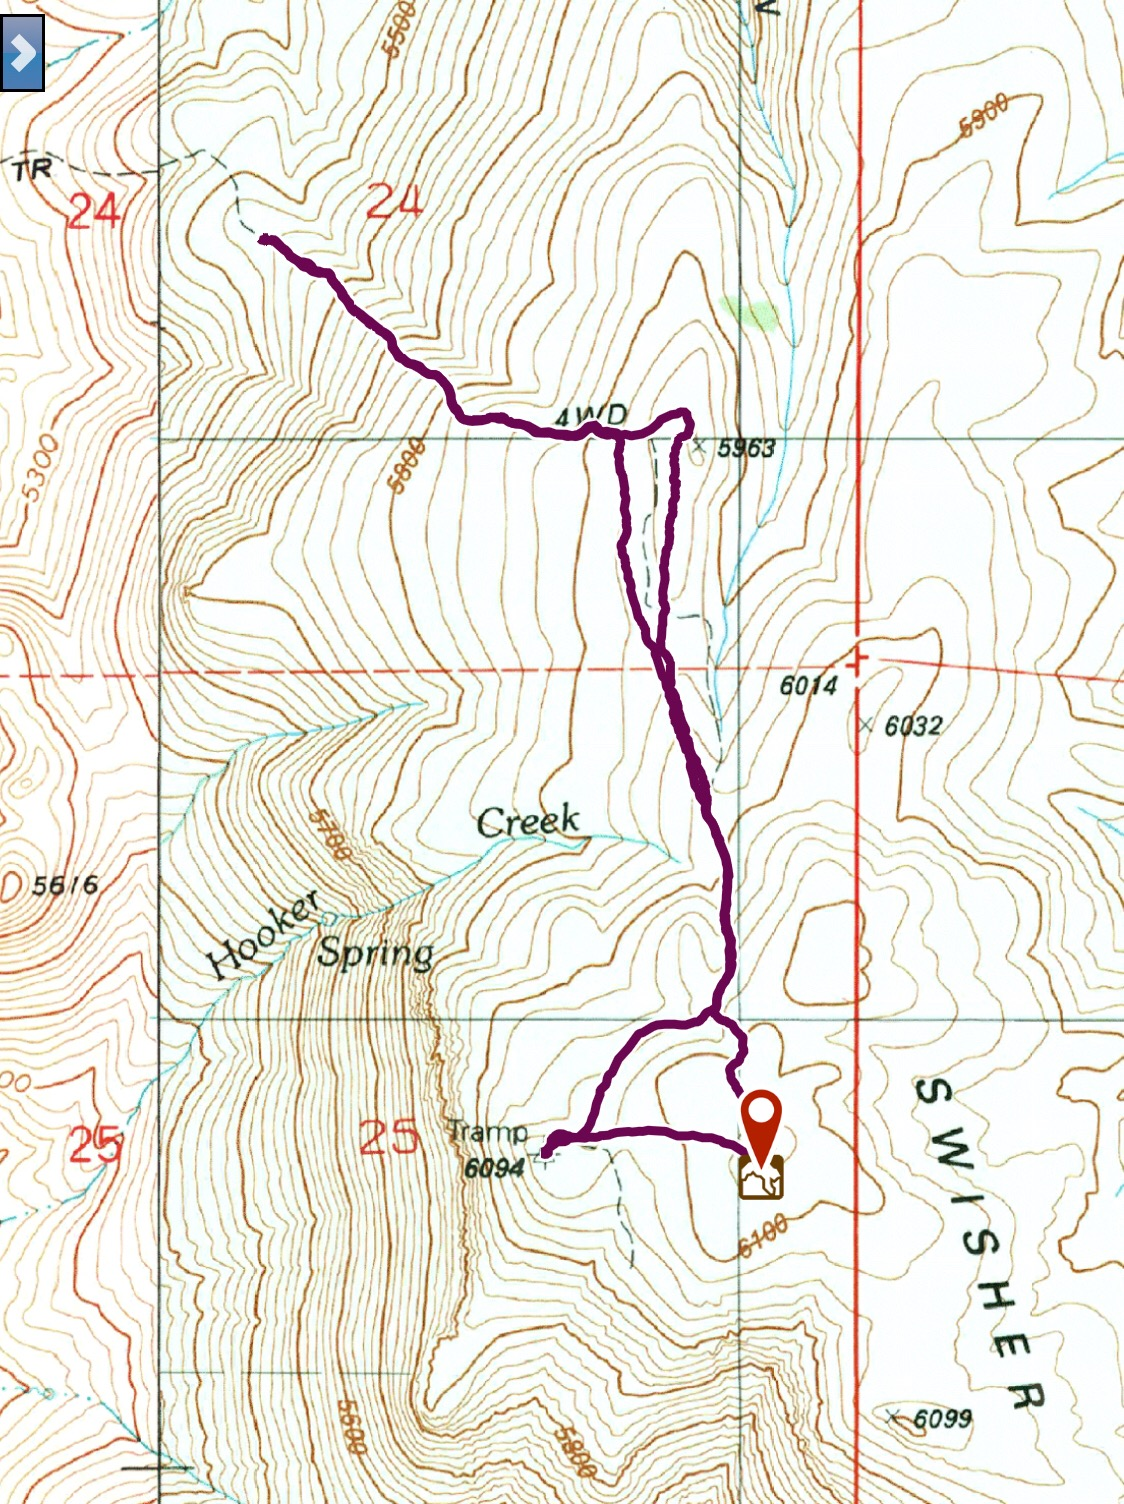 The GPS track showing the walking portion of ascent which was 3.0 miles round trip with 555 feet of gain.